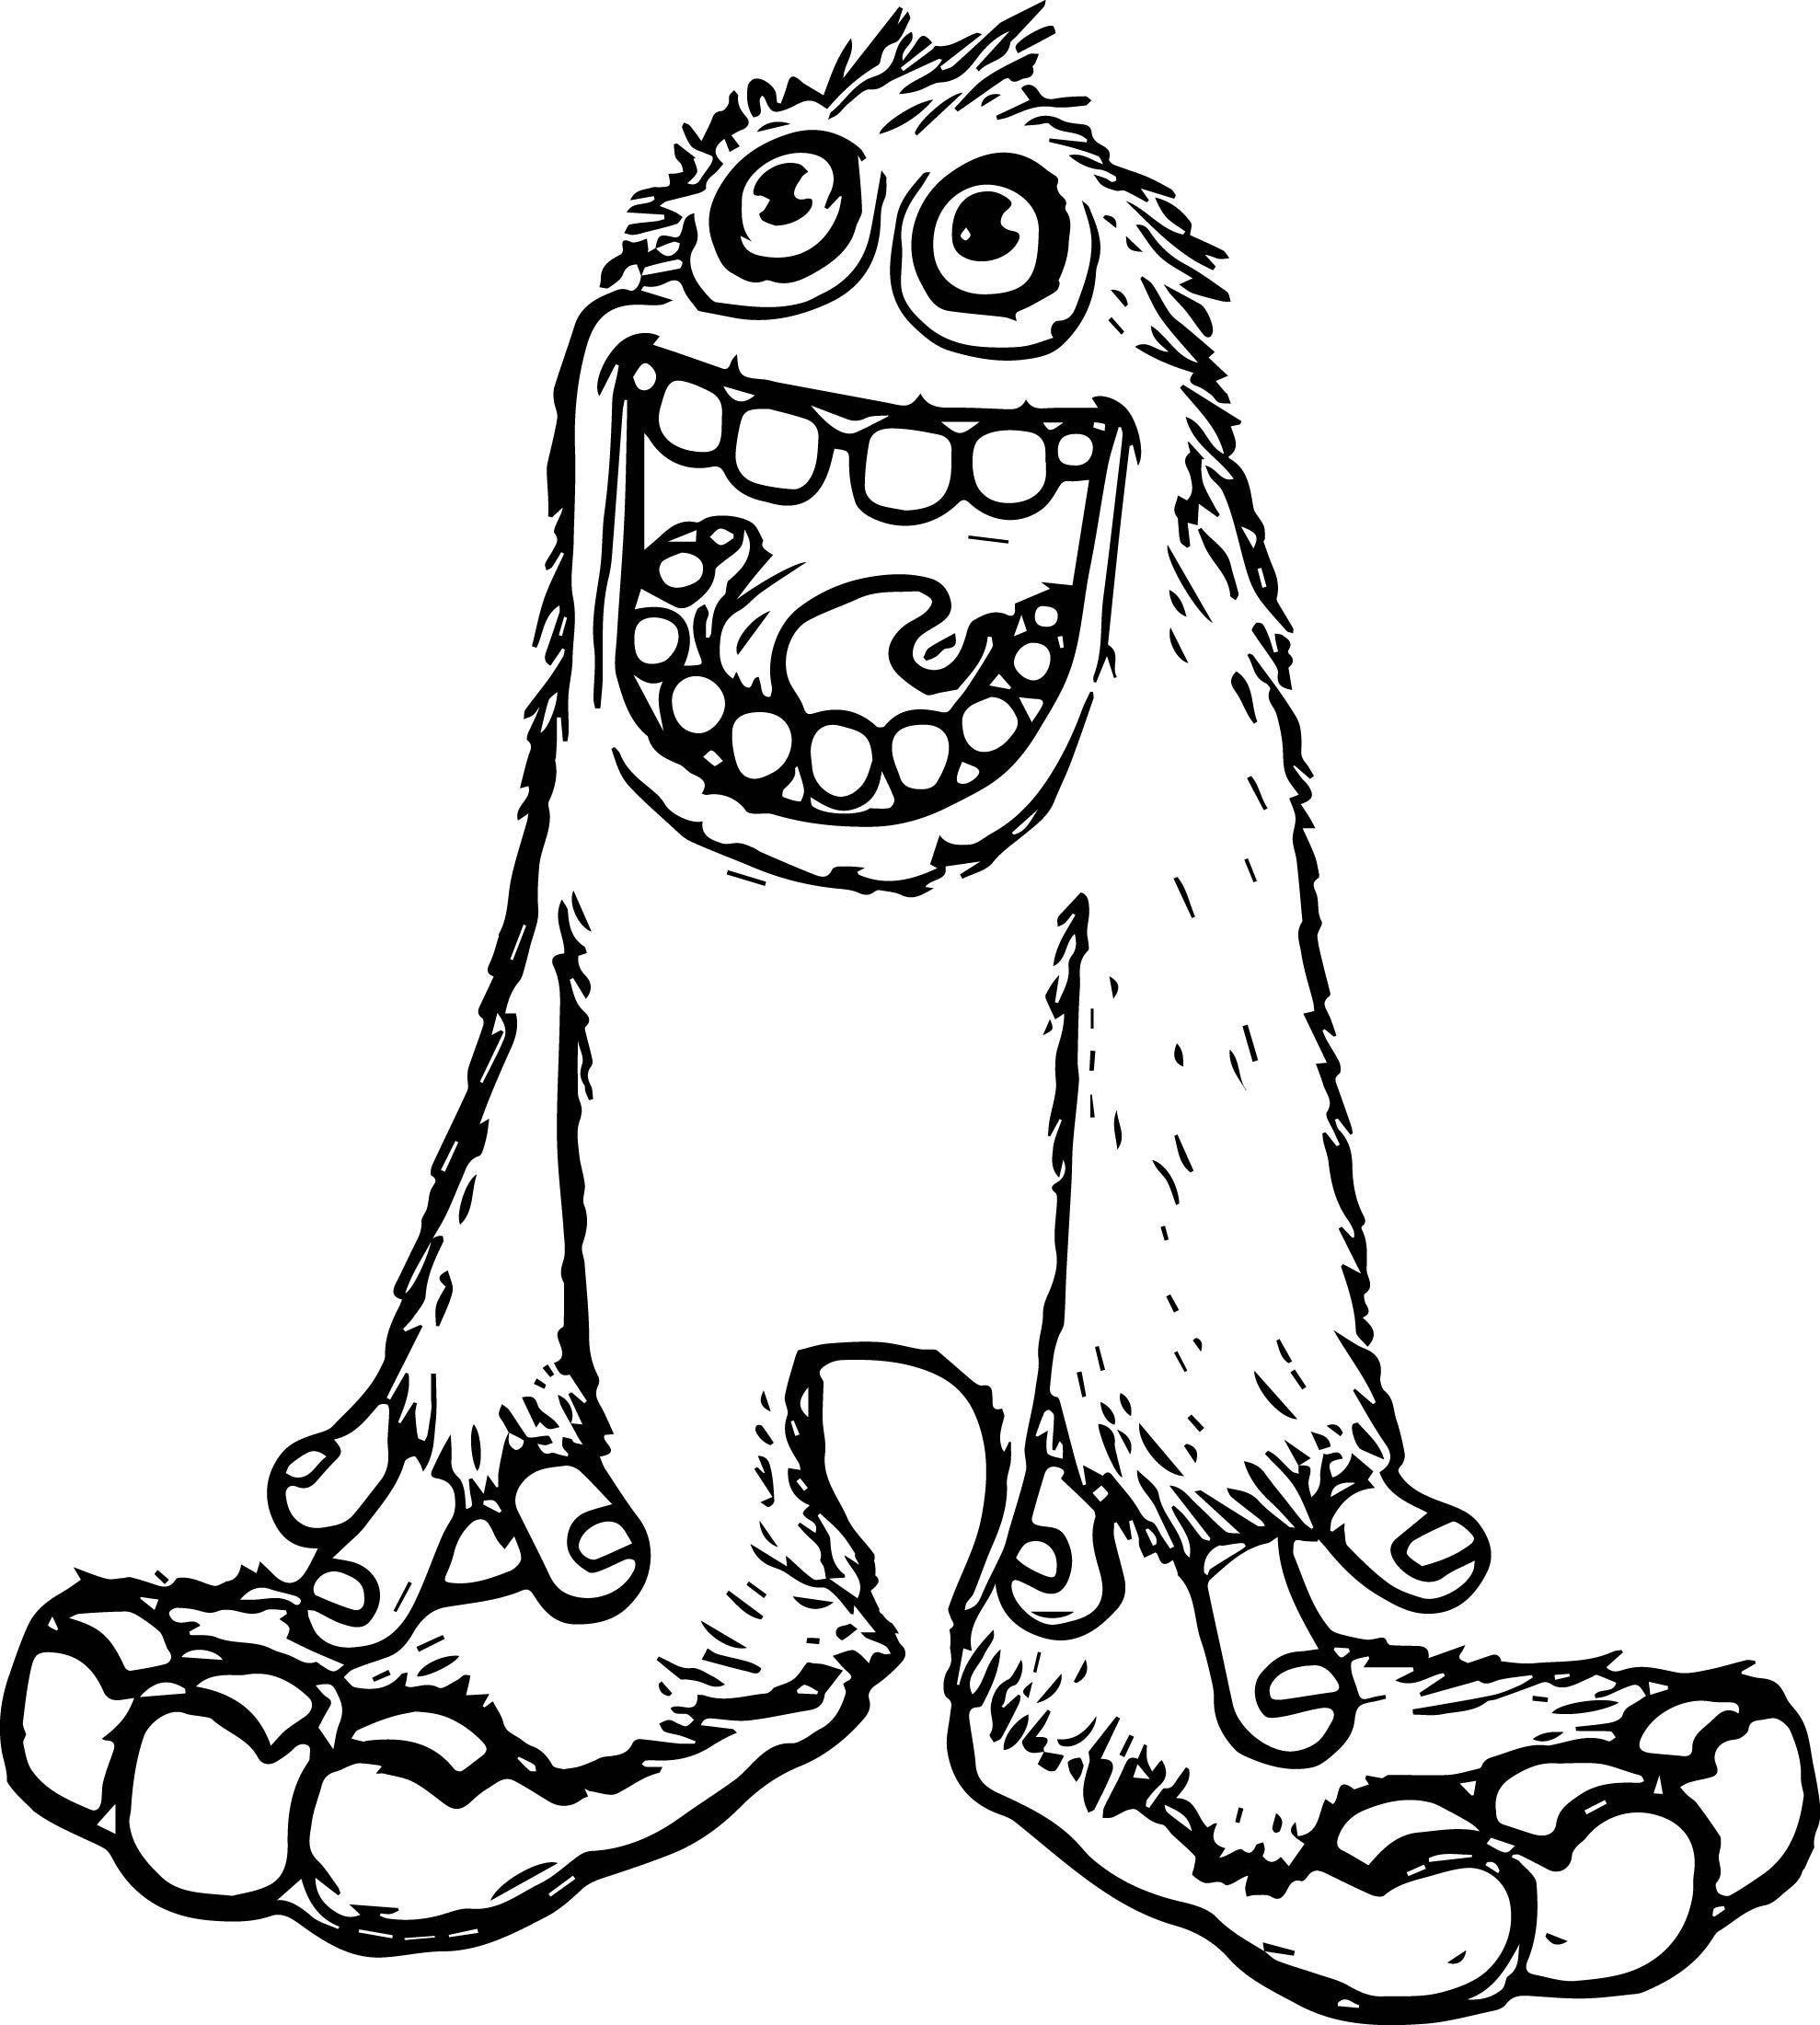 Monsters Coloring Page 16